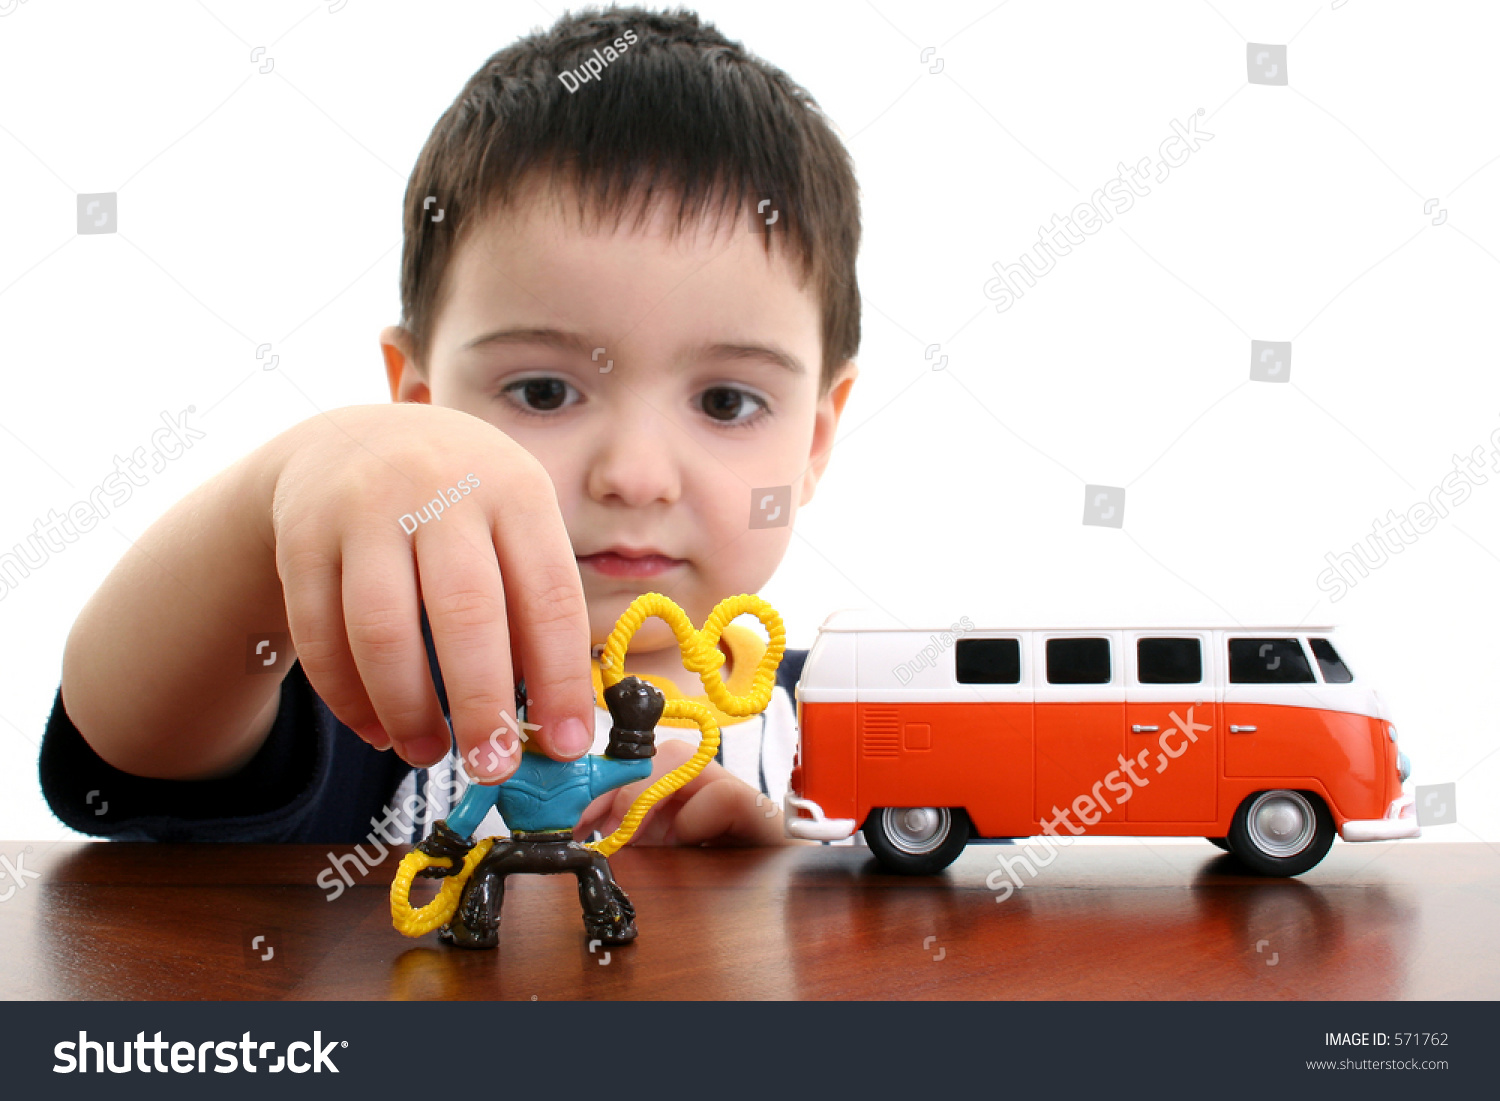 Baby Boy Toy Cars : Toddler boy playing with toy car and cowboy shot in